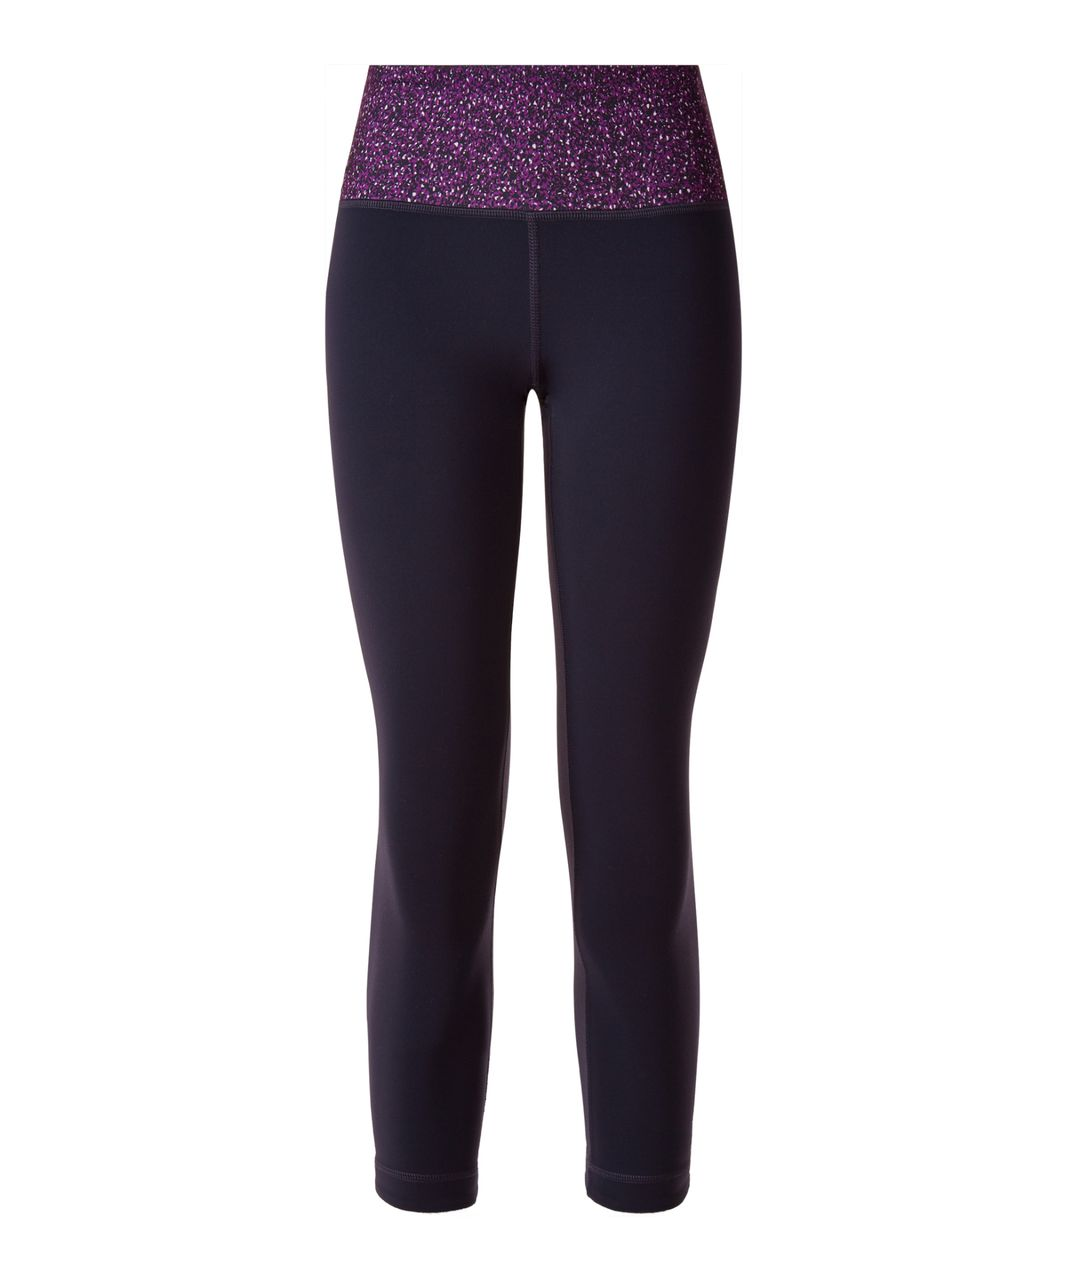 Lululemon Wunder Under Crop III (Reversible) - Black Grape / Black / Flashback Static Powdered Rose Tender Violet